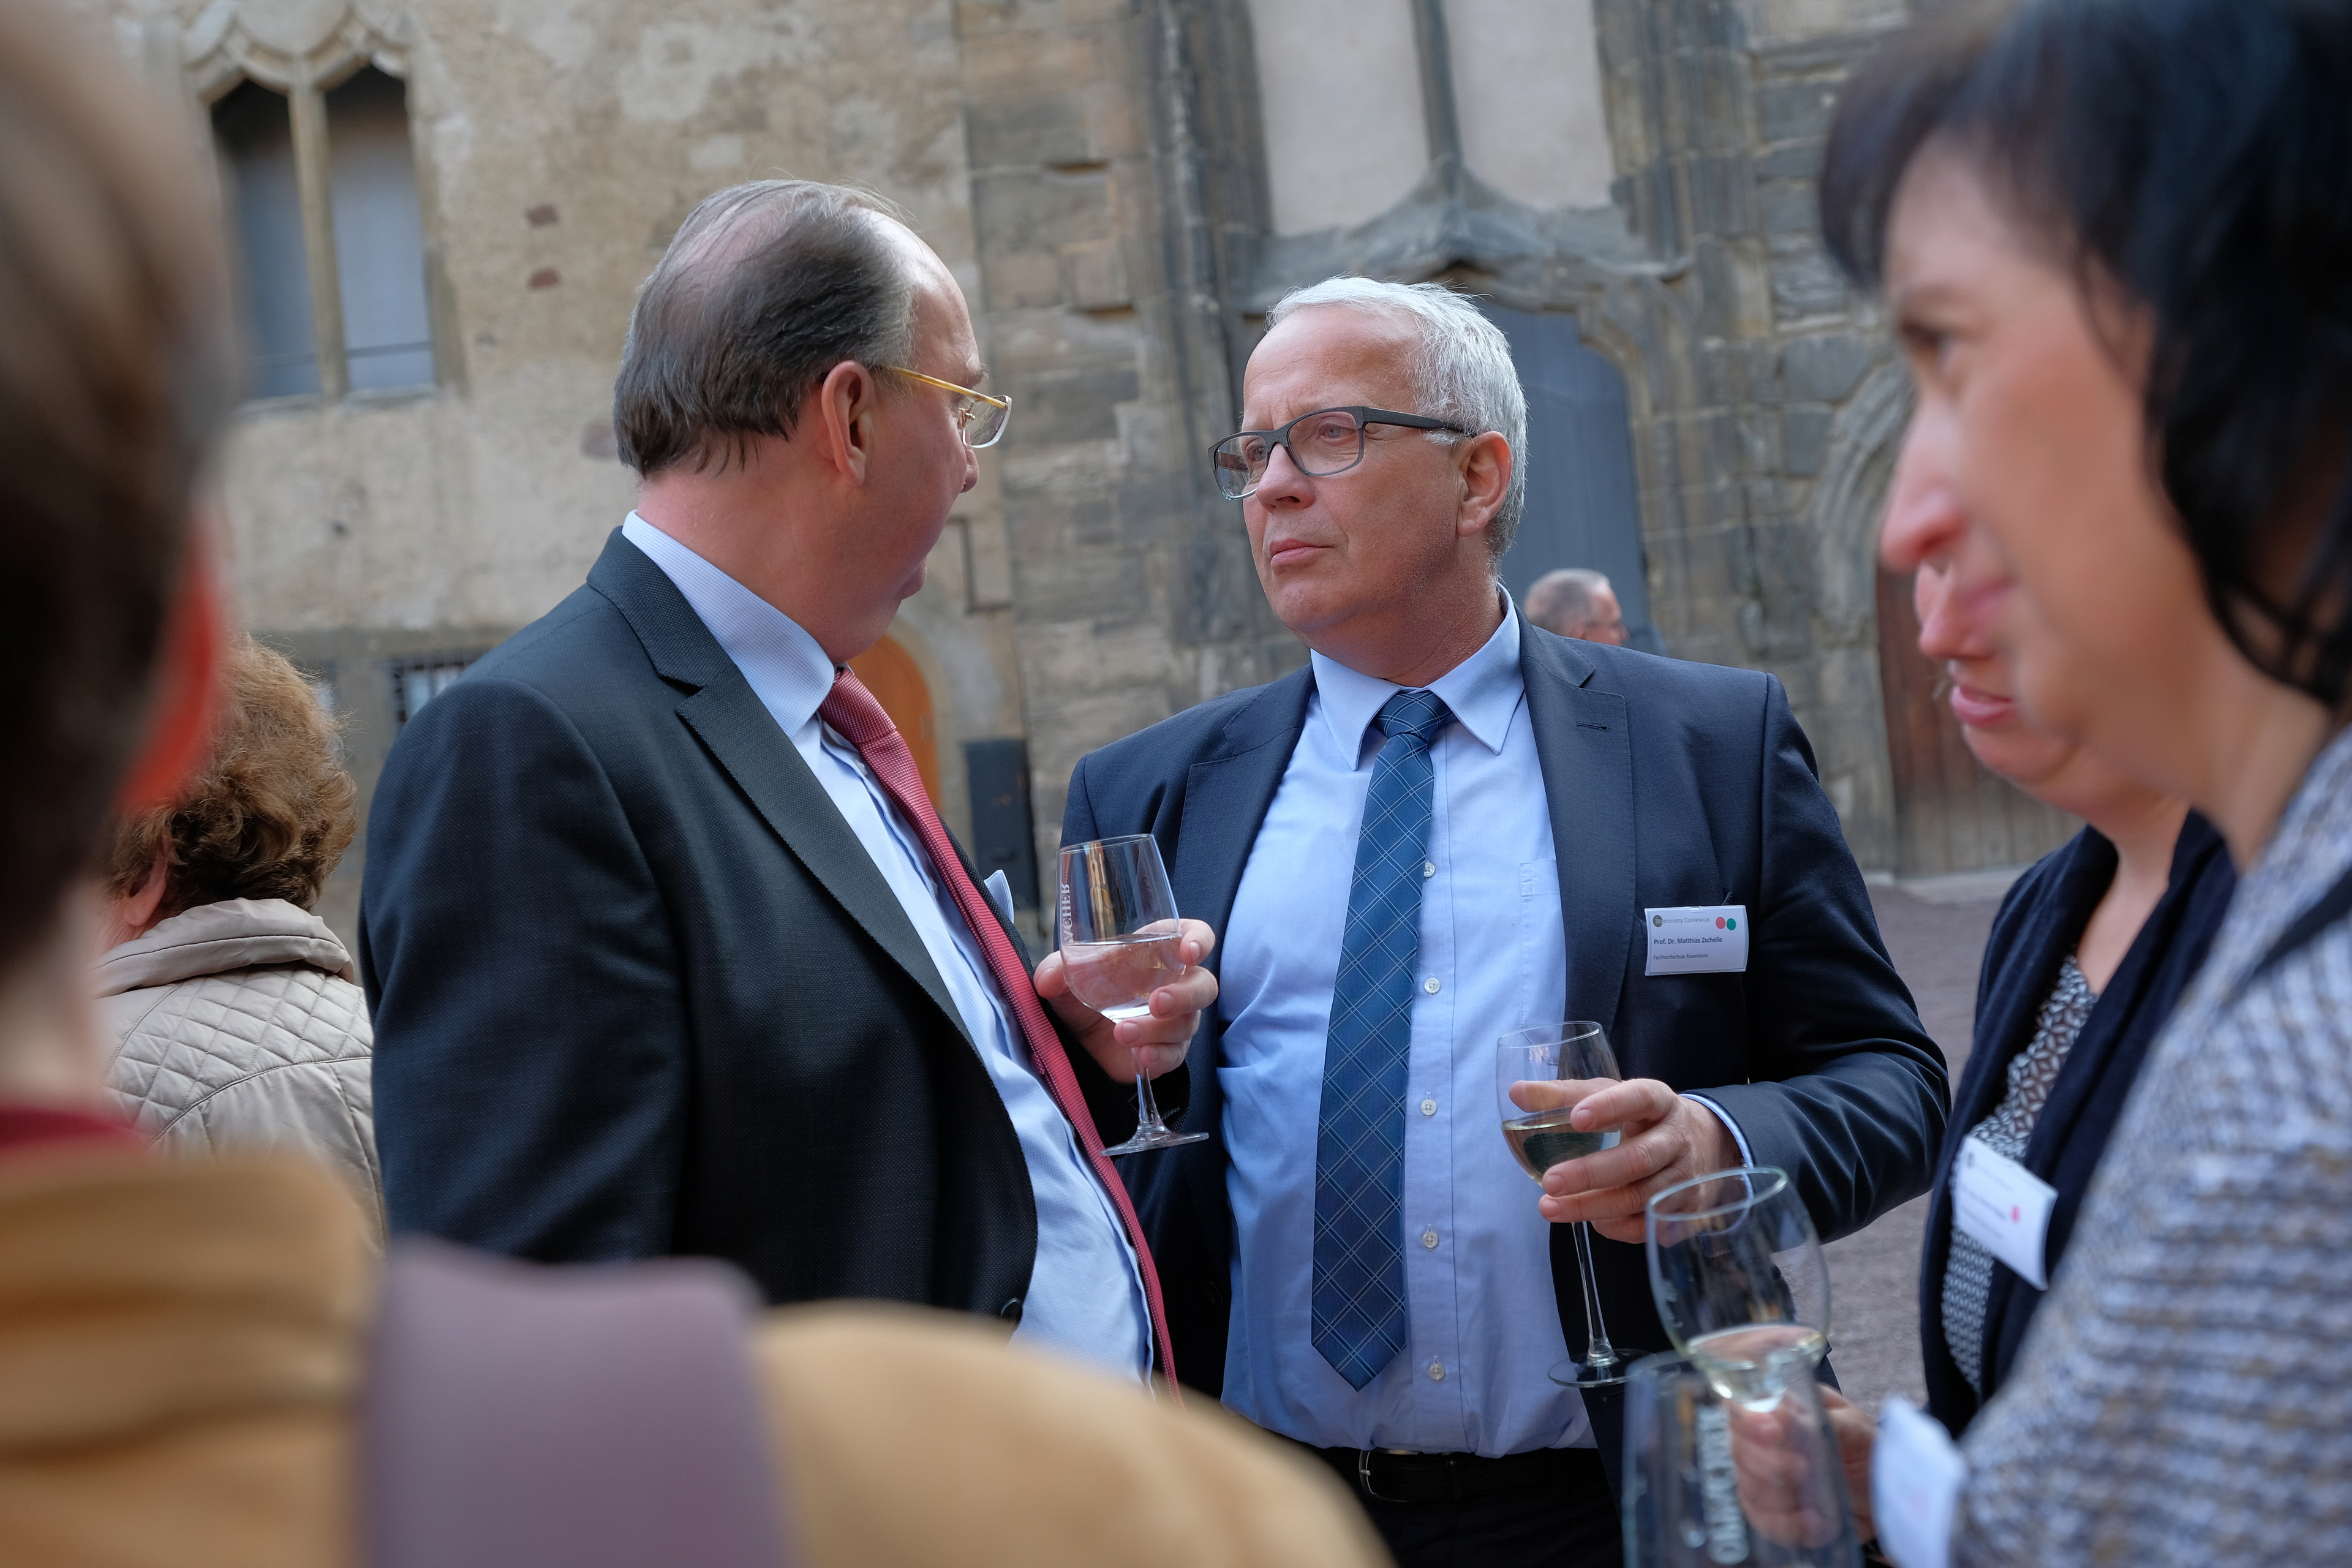 Horst Mosler and Matthias Zscheile at the dinner event (Foto: Michael Deutsch).JPG